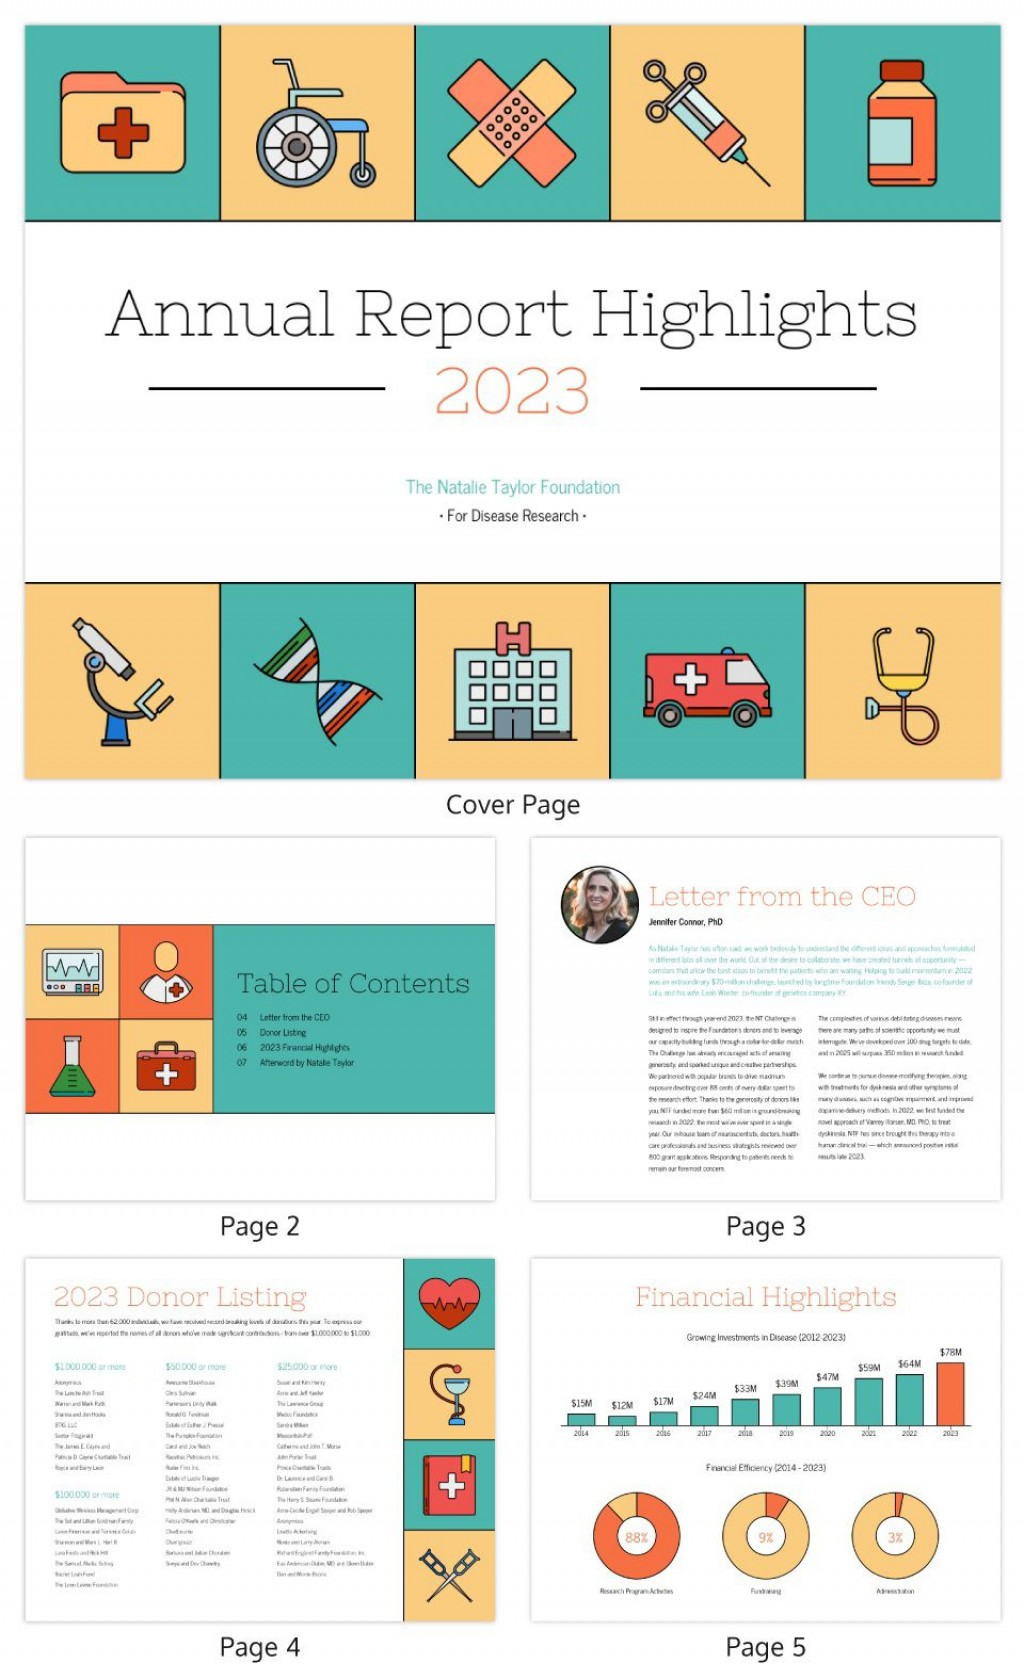 005 Wondrou Non Profit Annual Report Template High Resolution  Not For Small NonprofitLarge